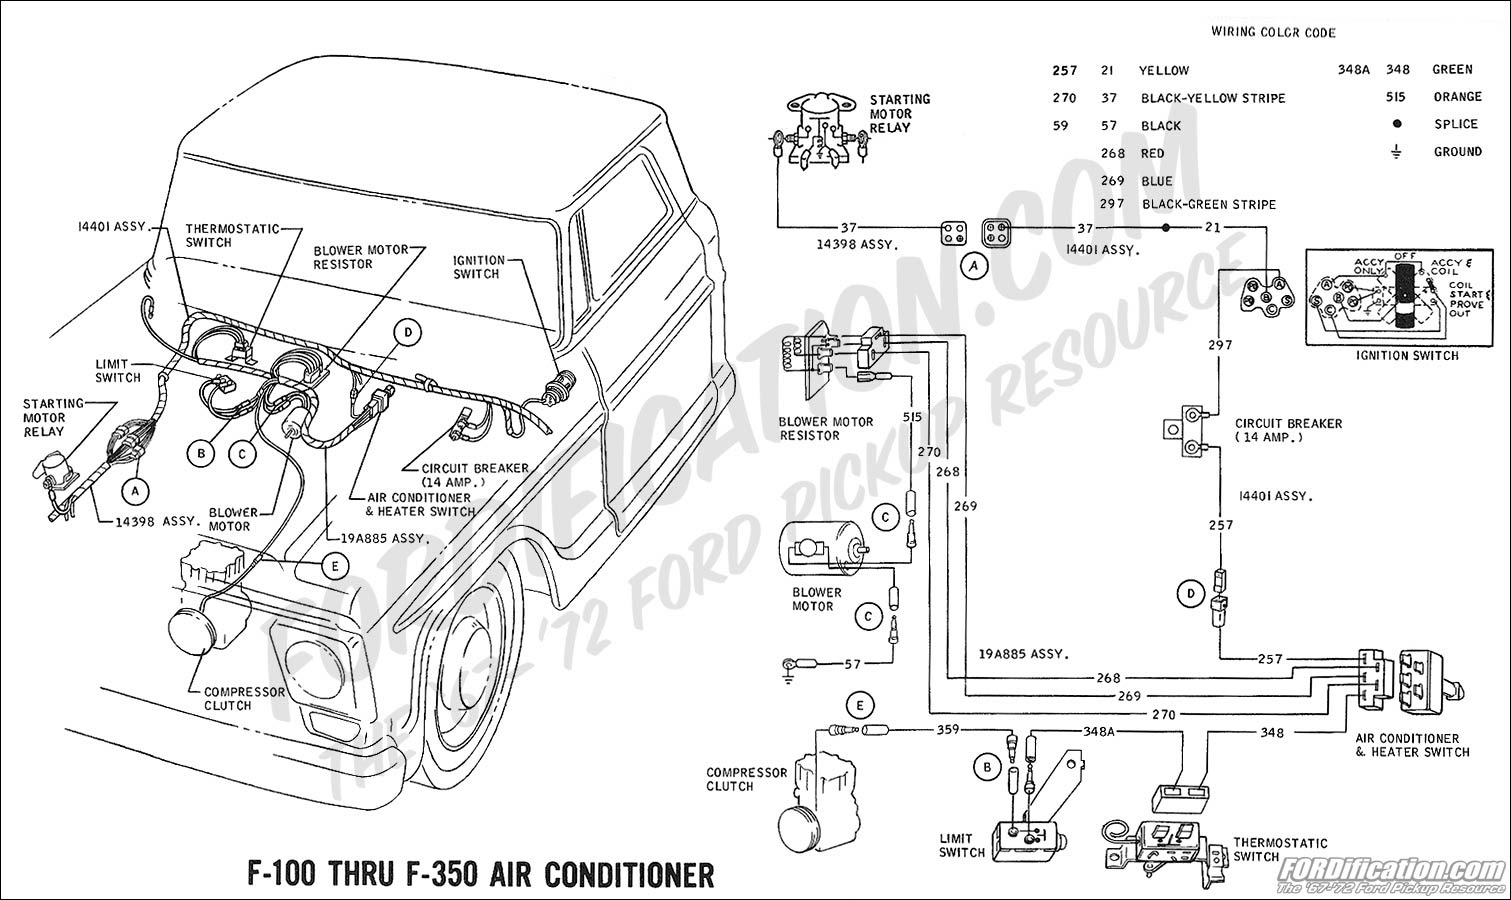 Diagram In Pictures Database 2006 F250 Wiring Diagram Ac Just Download Or Read Diagram Ac Online Casalamm Edu Mx